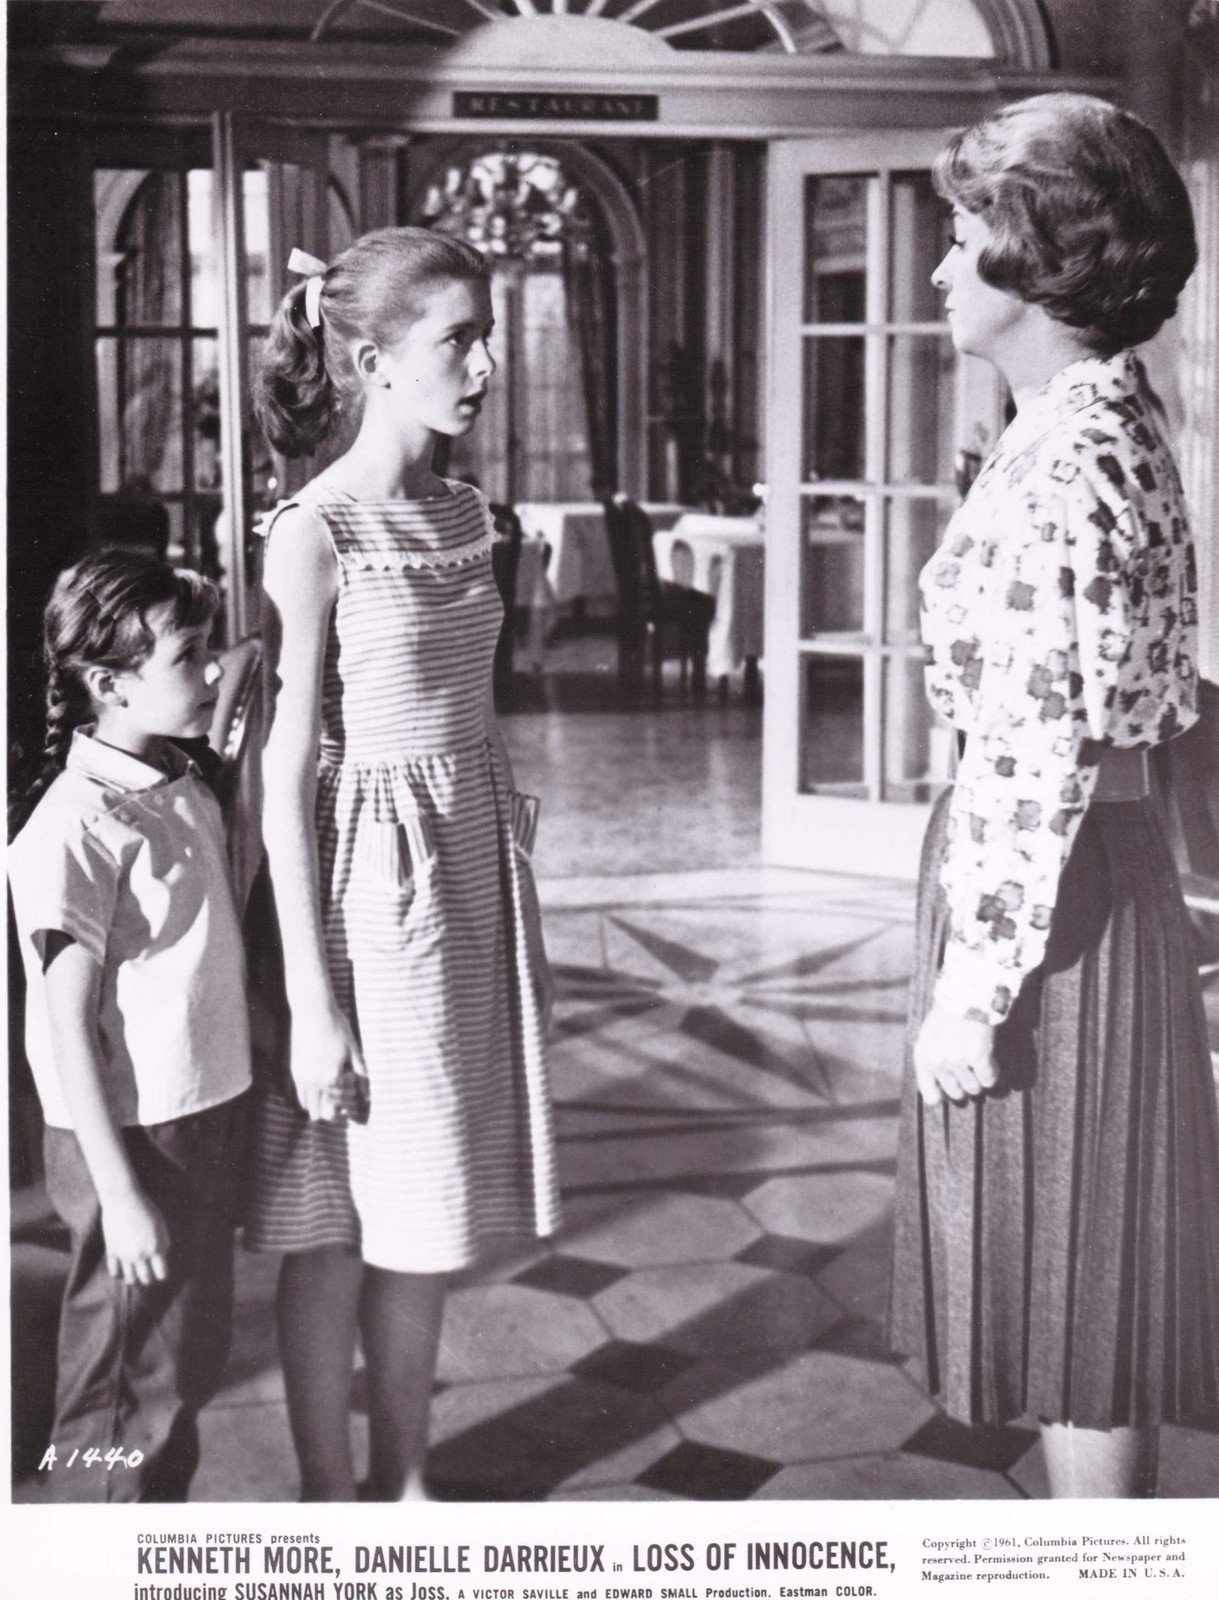 Jane Asher, Danielle Darrieux, and Elizabeth Dear in The Greengage Summer (1961)